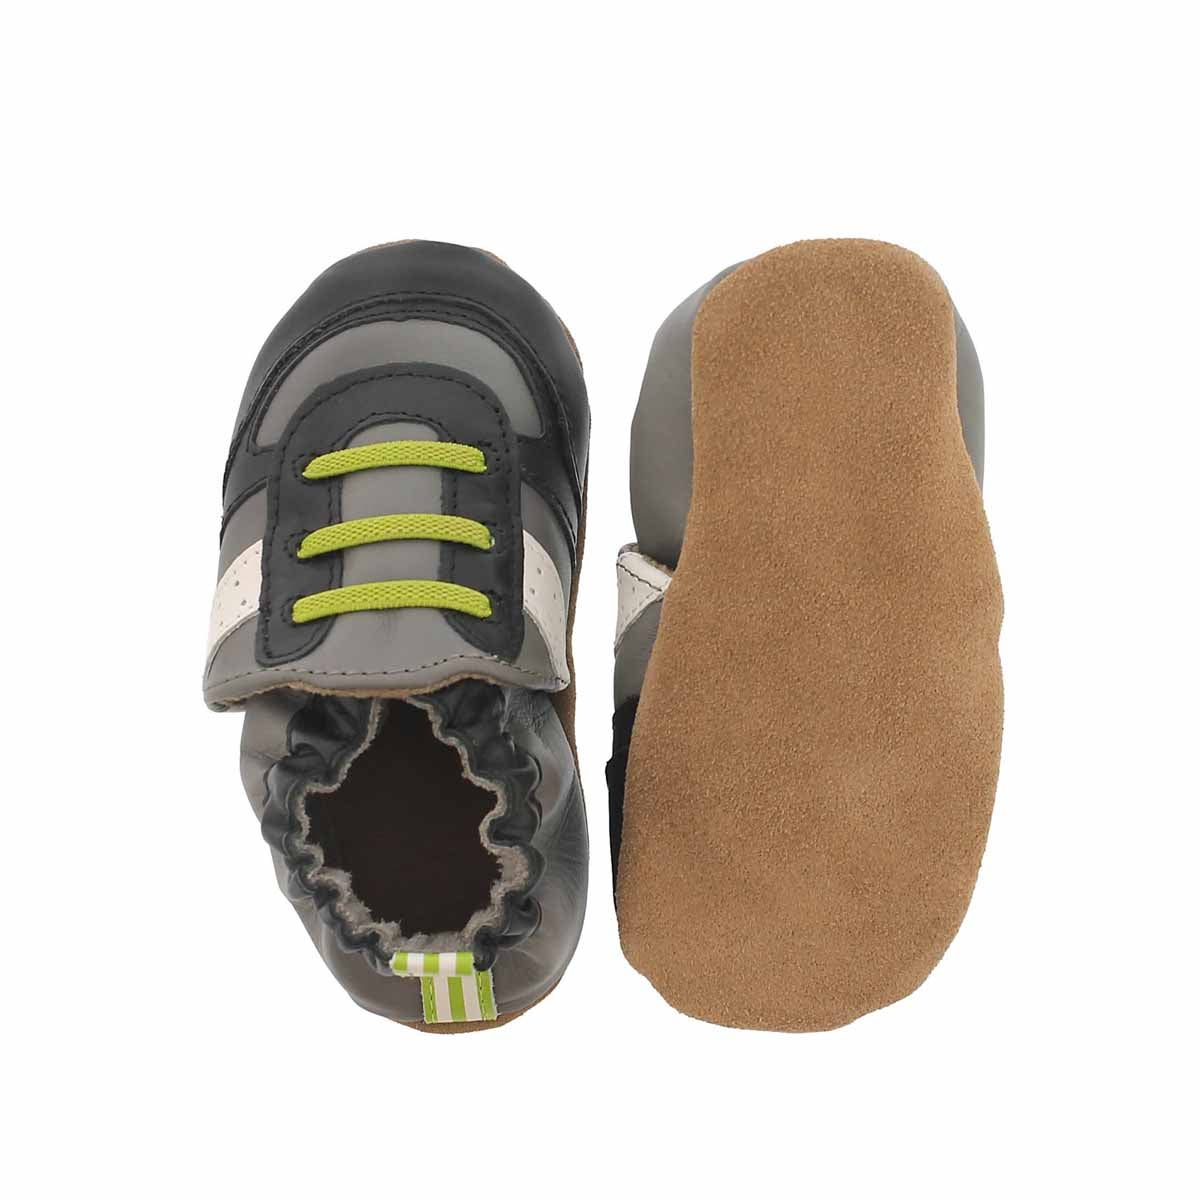 Infs-b Super Sporty gry/lime slipper